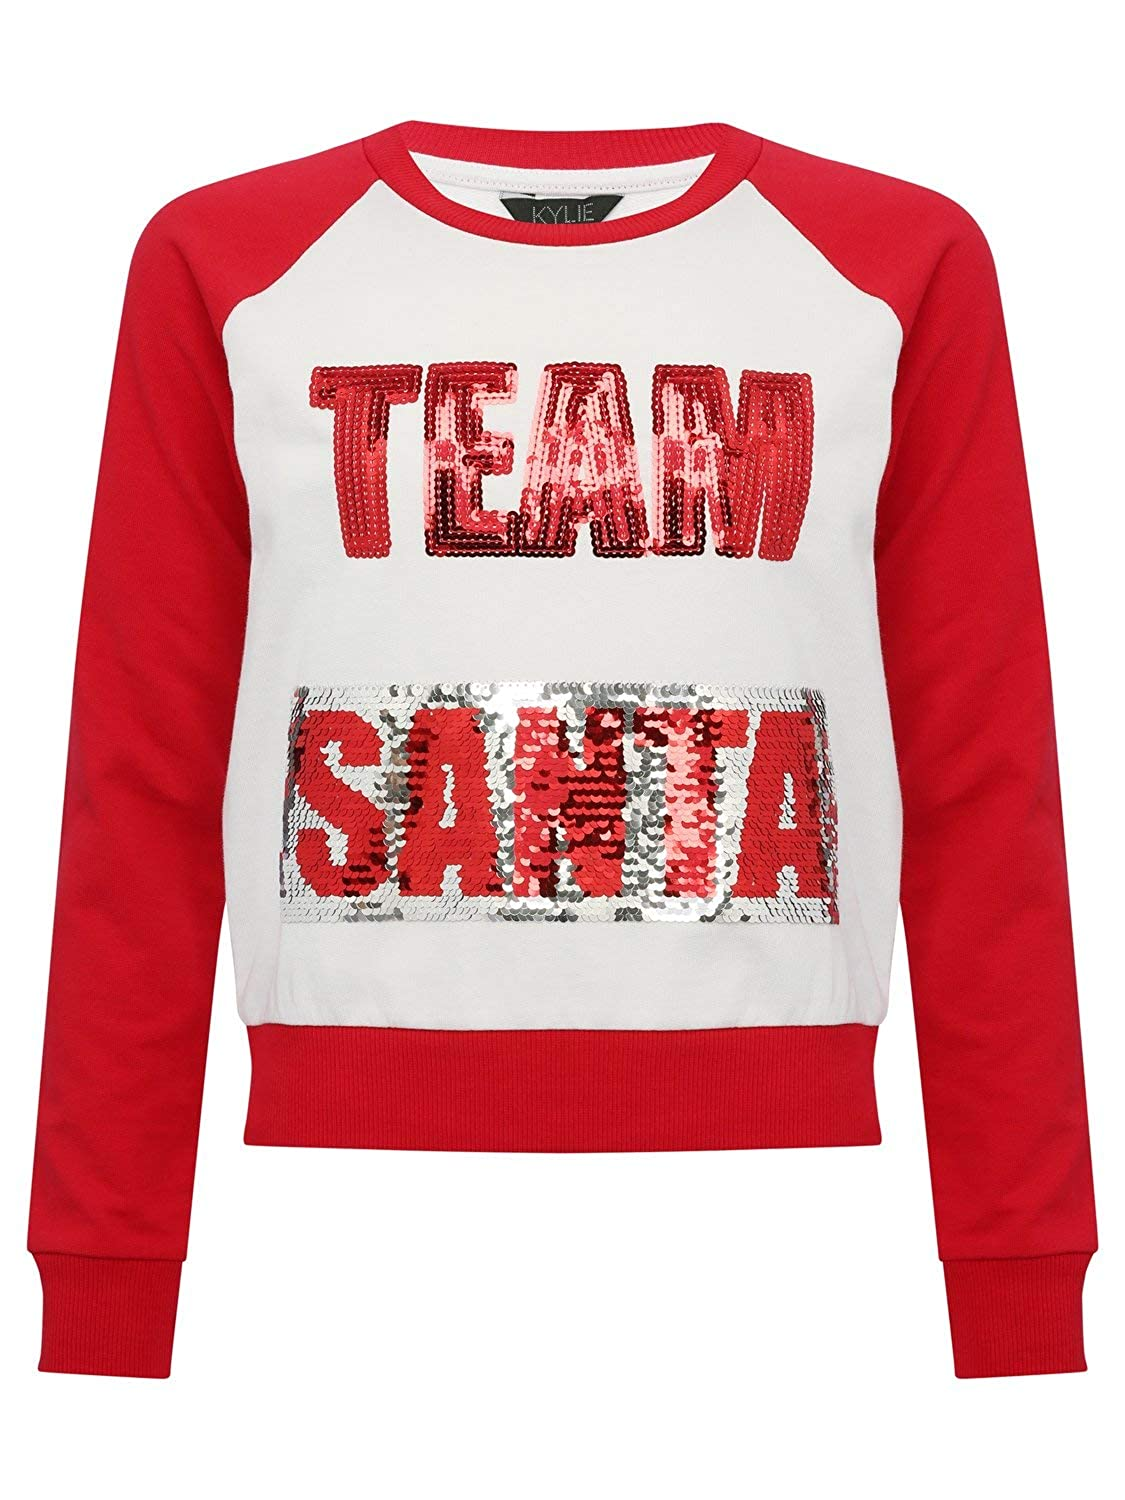 M& Co Teen Girls Long Sleeve Team Santa Elf Two Way Sequin Embellished Christmas Sweatshirt